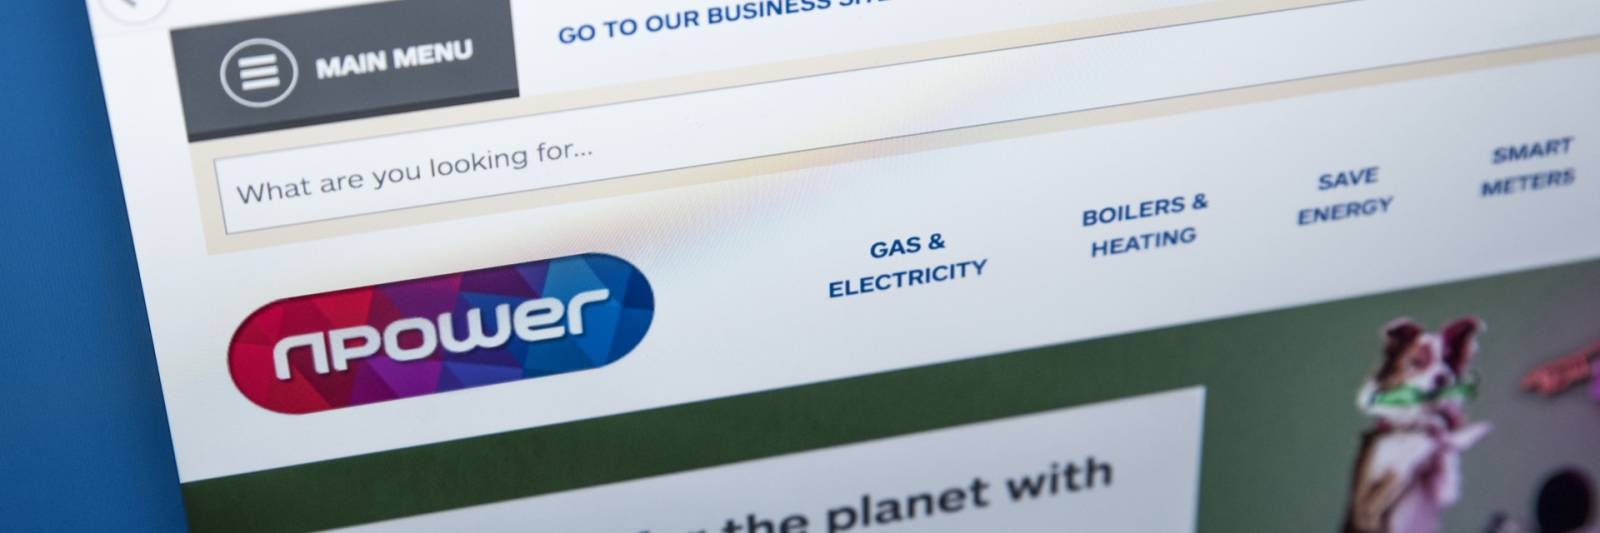 Npower Shuts Down App After Hackers Steal User Data